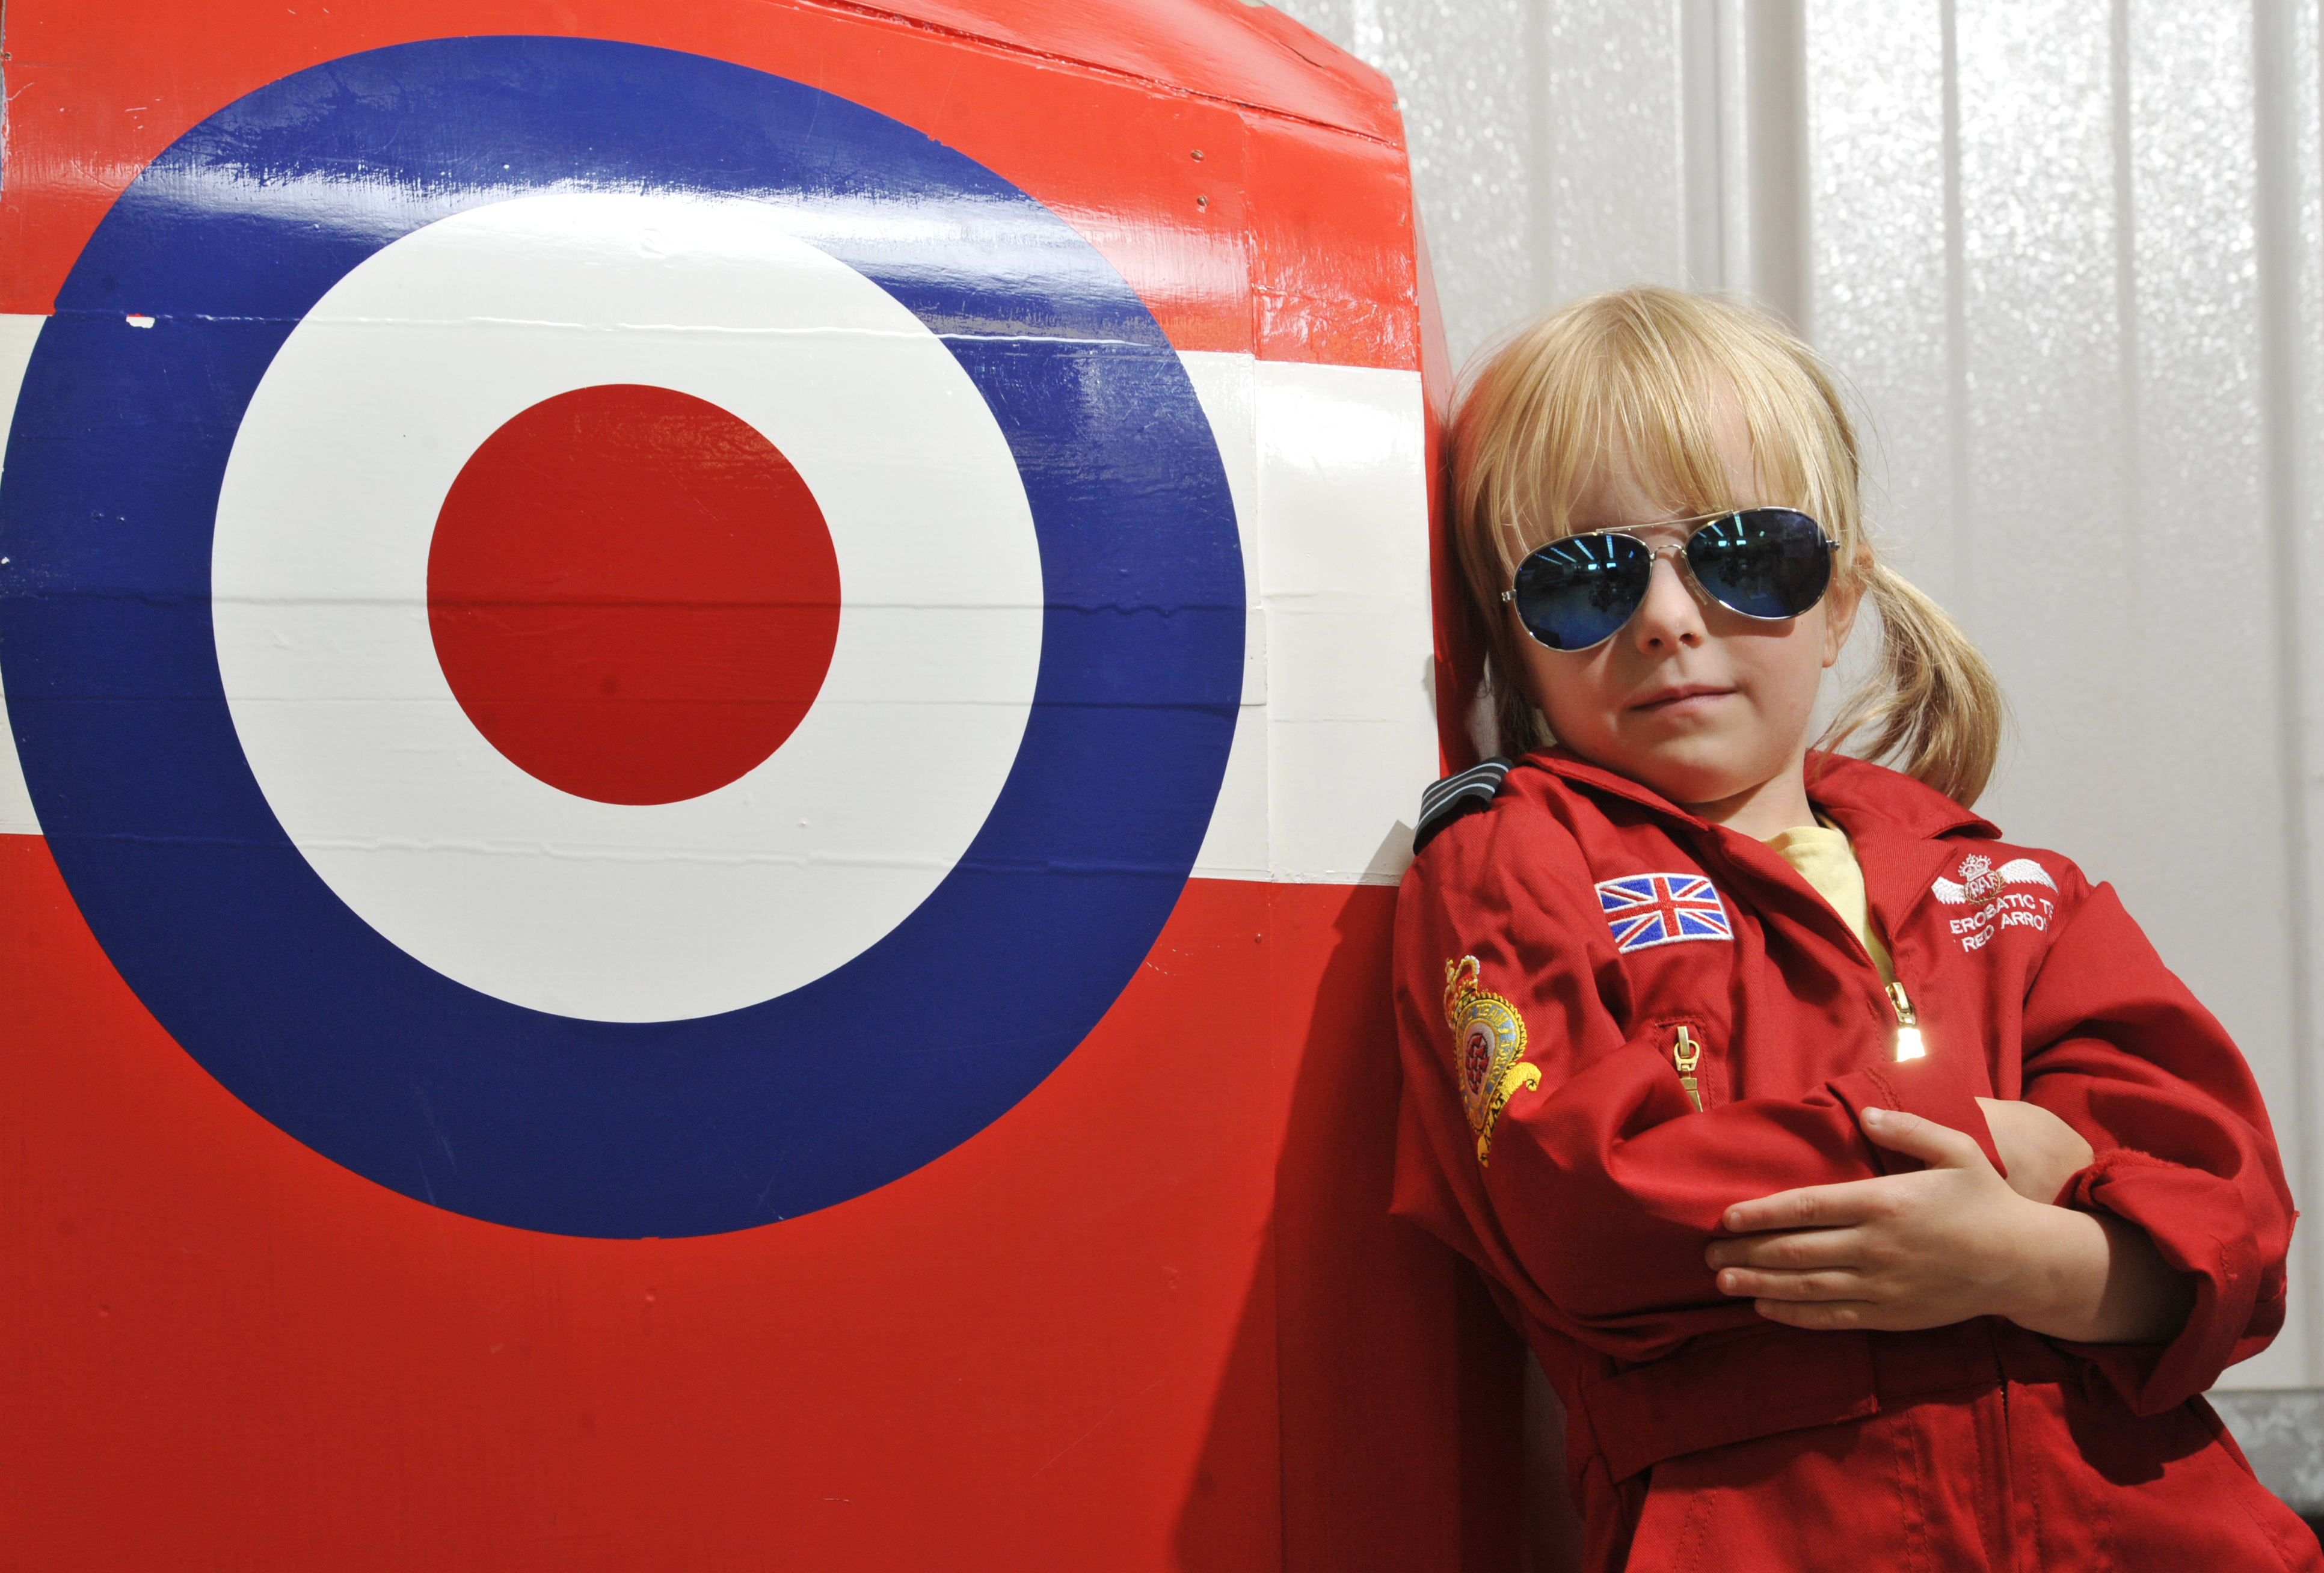 Six year old Mia looks forward to the arrival of the RAF Red Arrows at Scotland's National Airshow on Sat 26 July © Phil Wilkinson